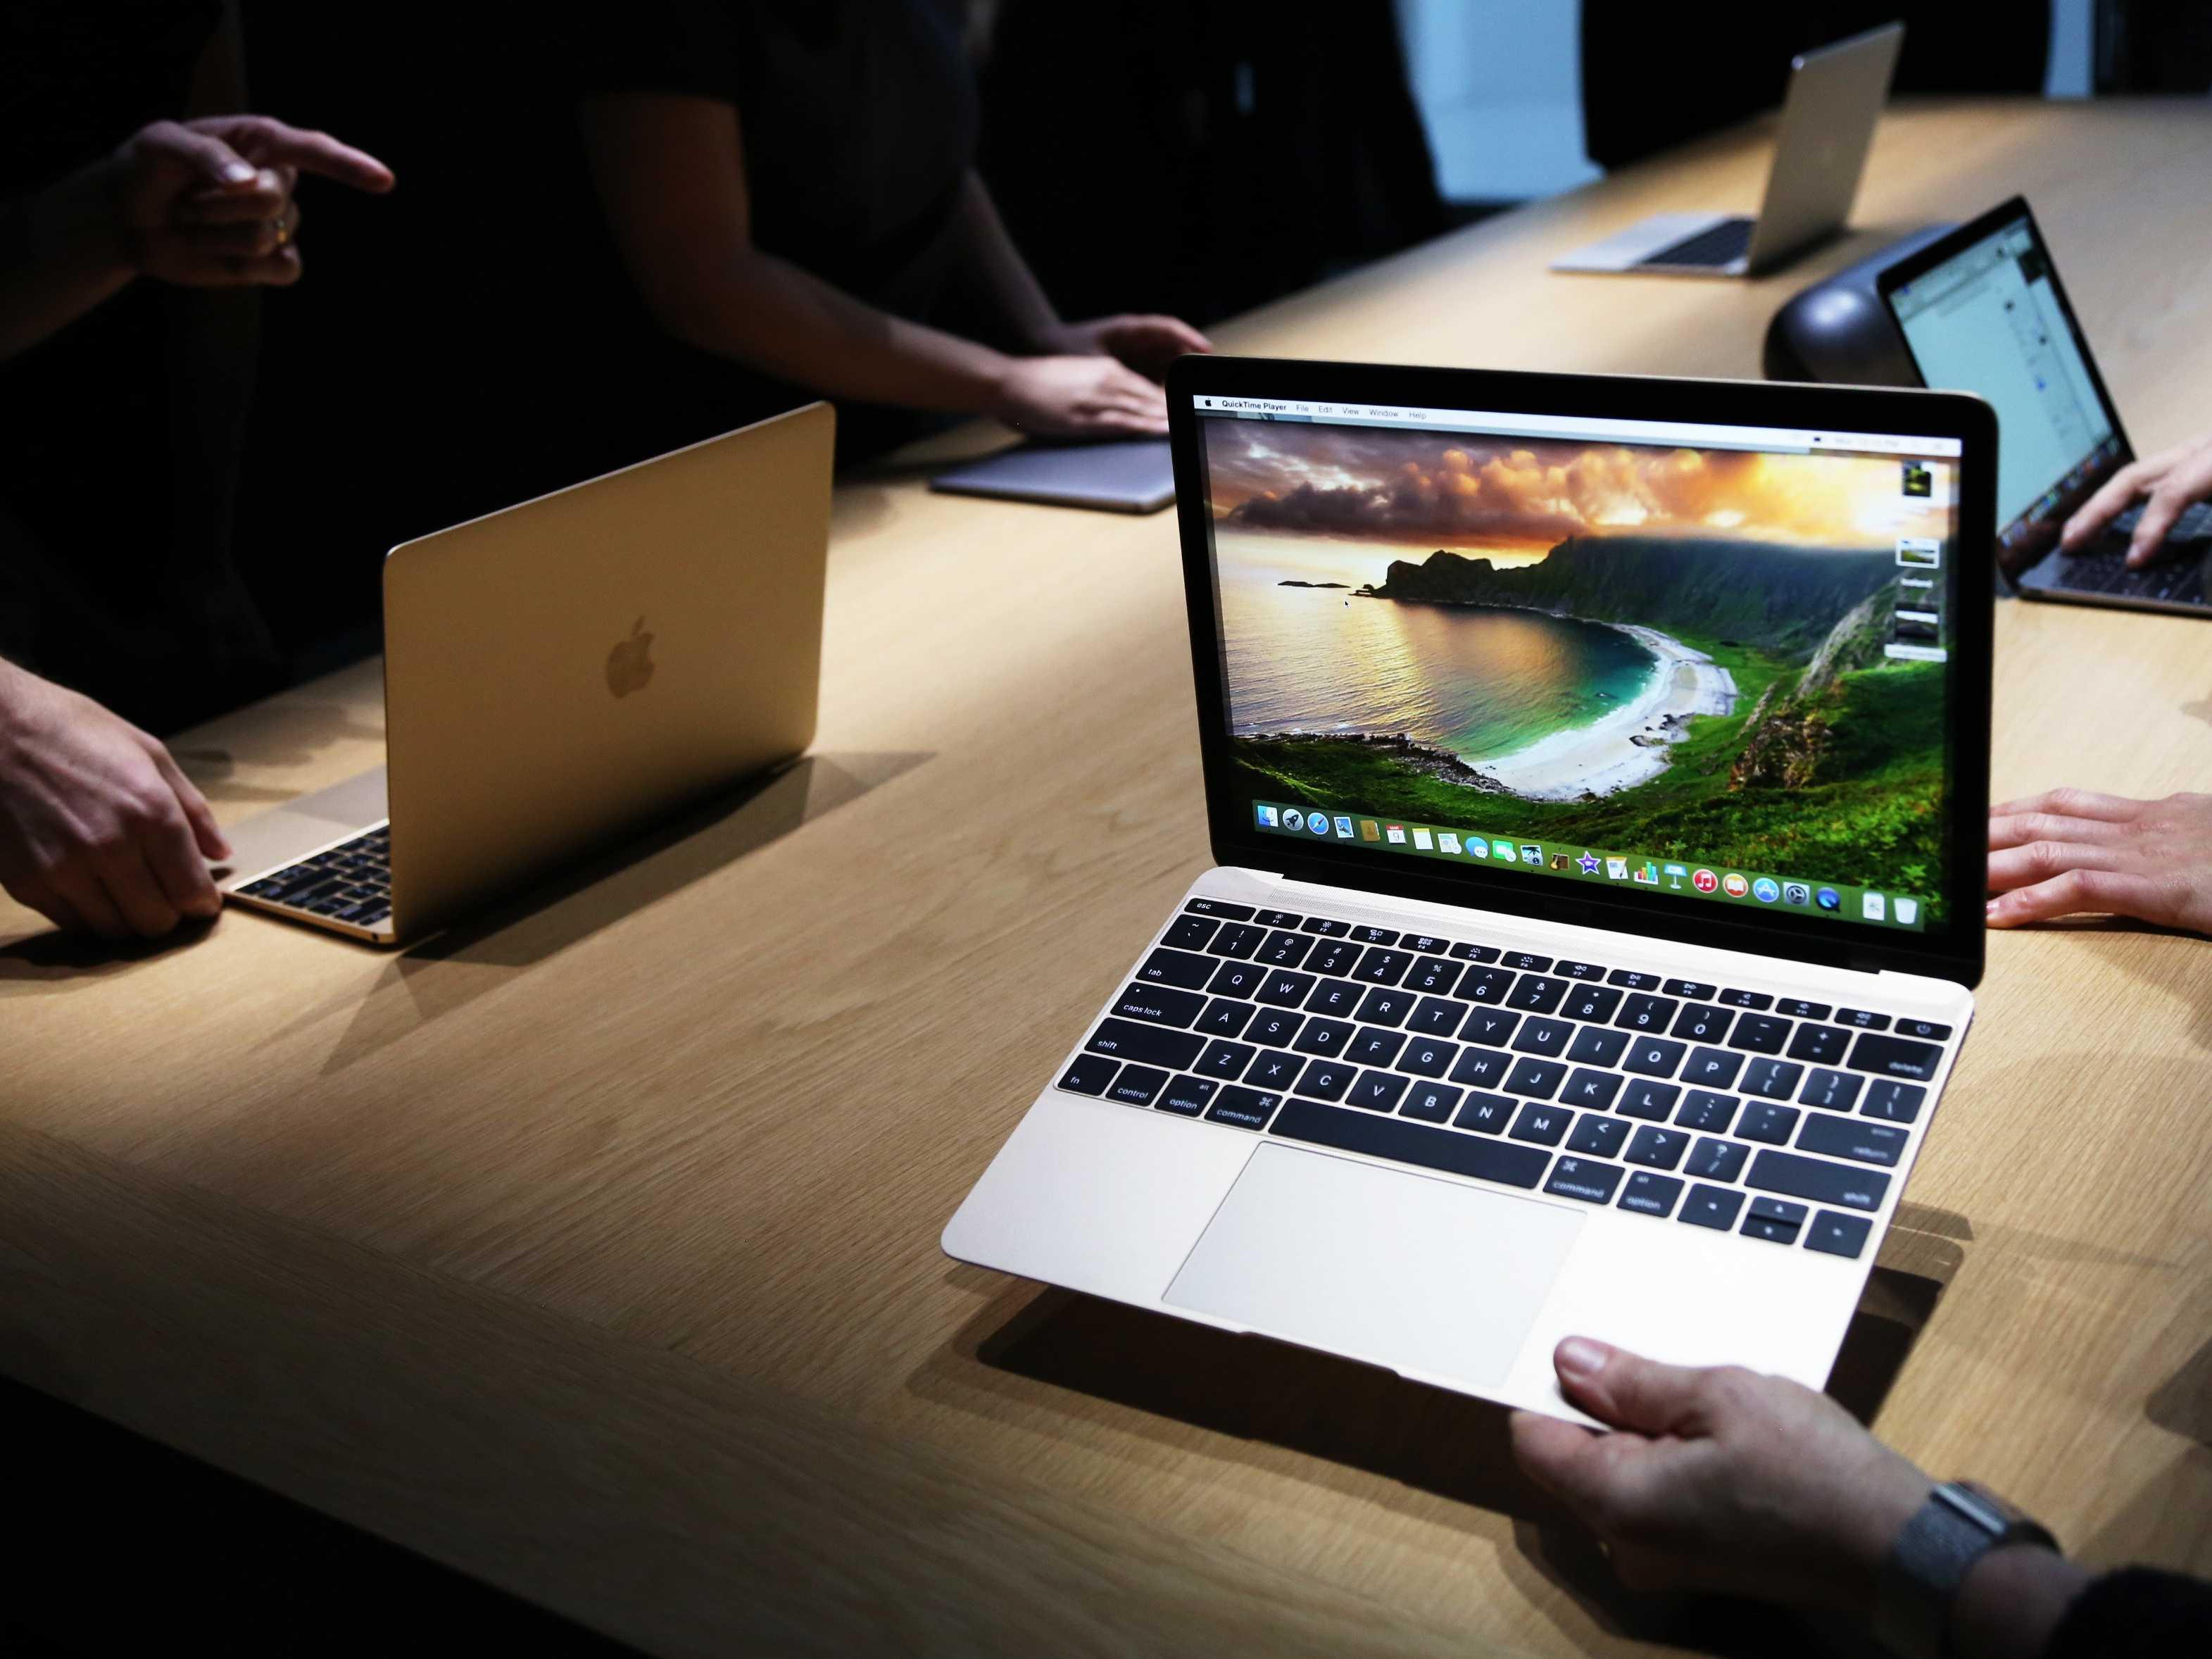 That New Super Thin MacBook Probably Wont Sell Very Well According To One Analyst